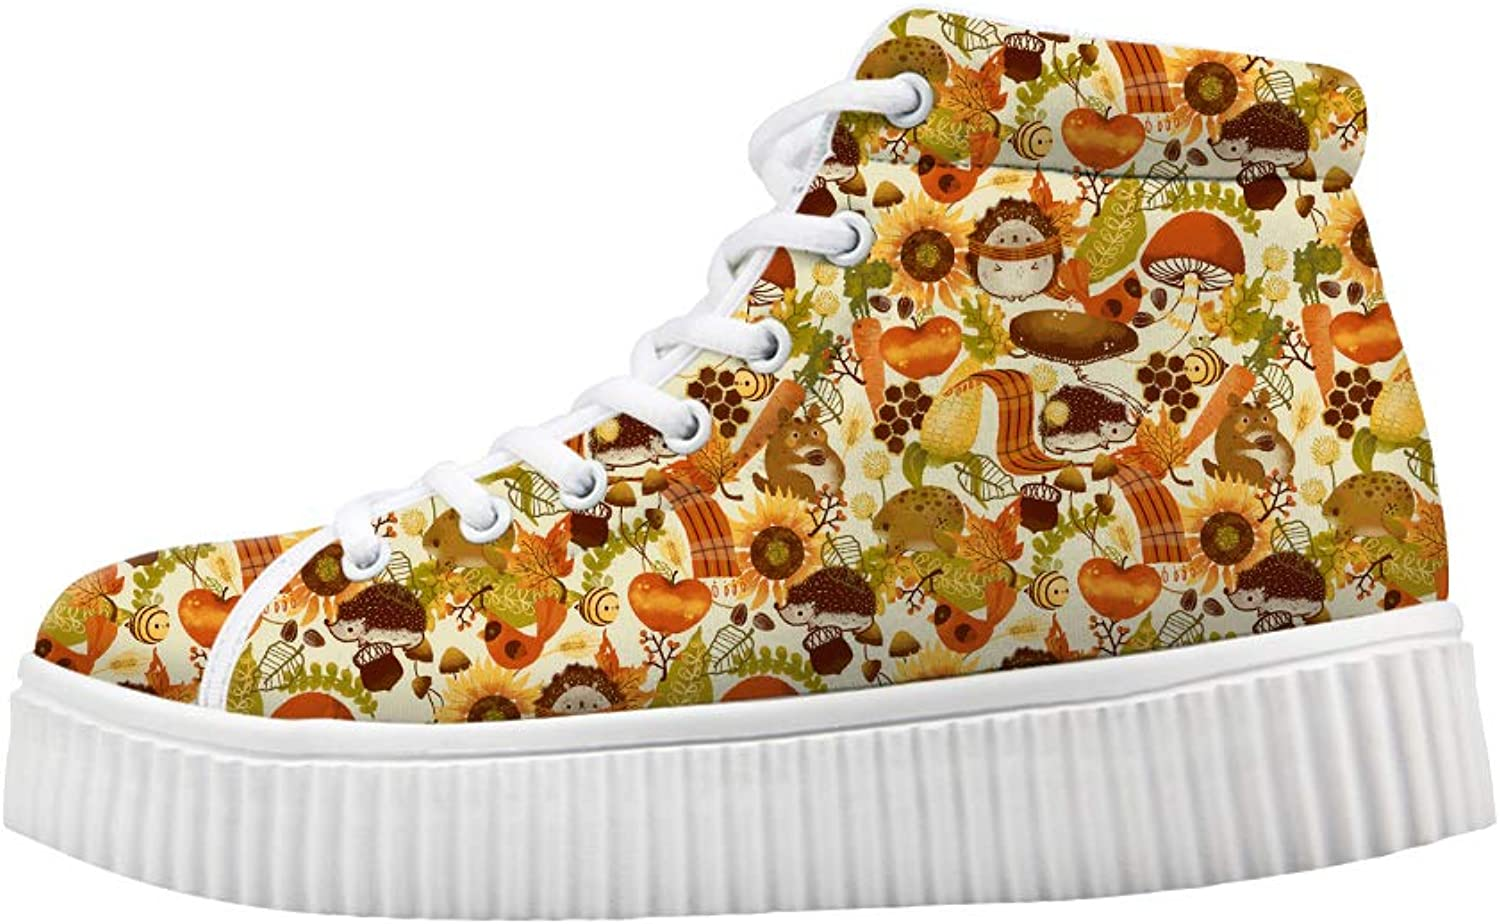 Owaheson Platform Lace up Sneaker Casual Chunky Walking shoes High Top Women Fall Apple Bee Sunflower Hedgehog Squirrel